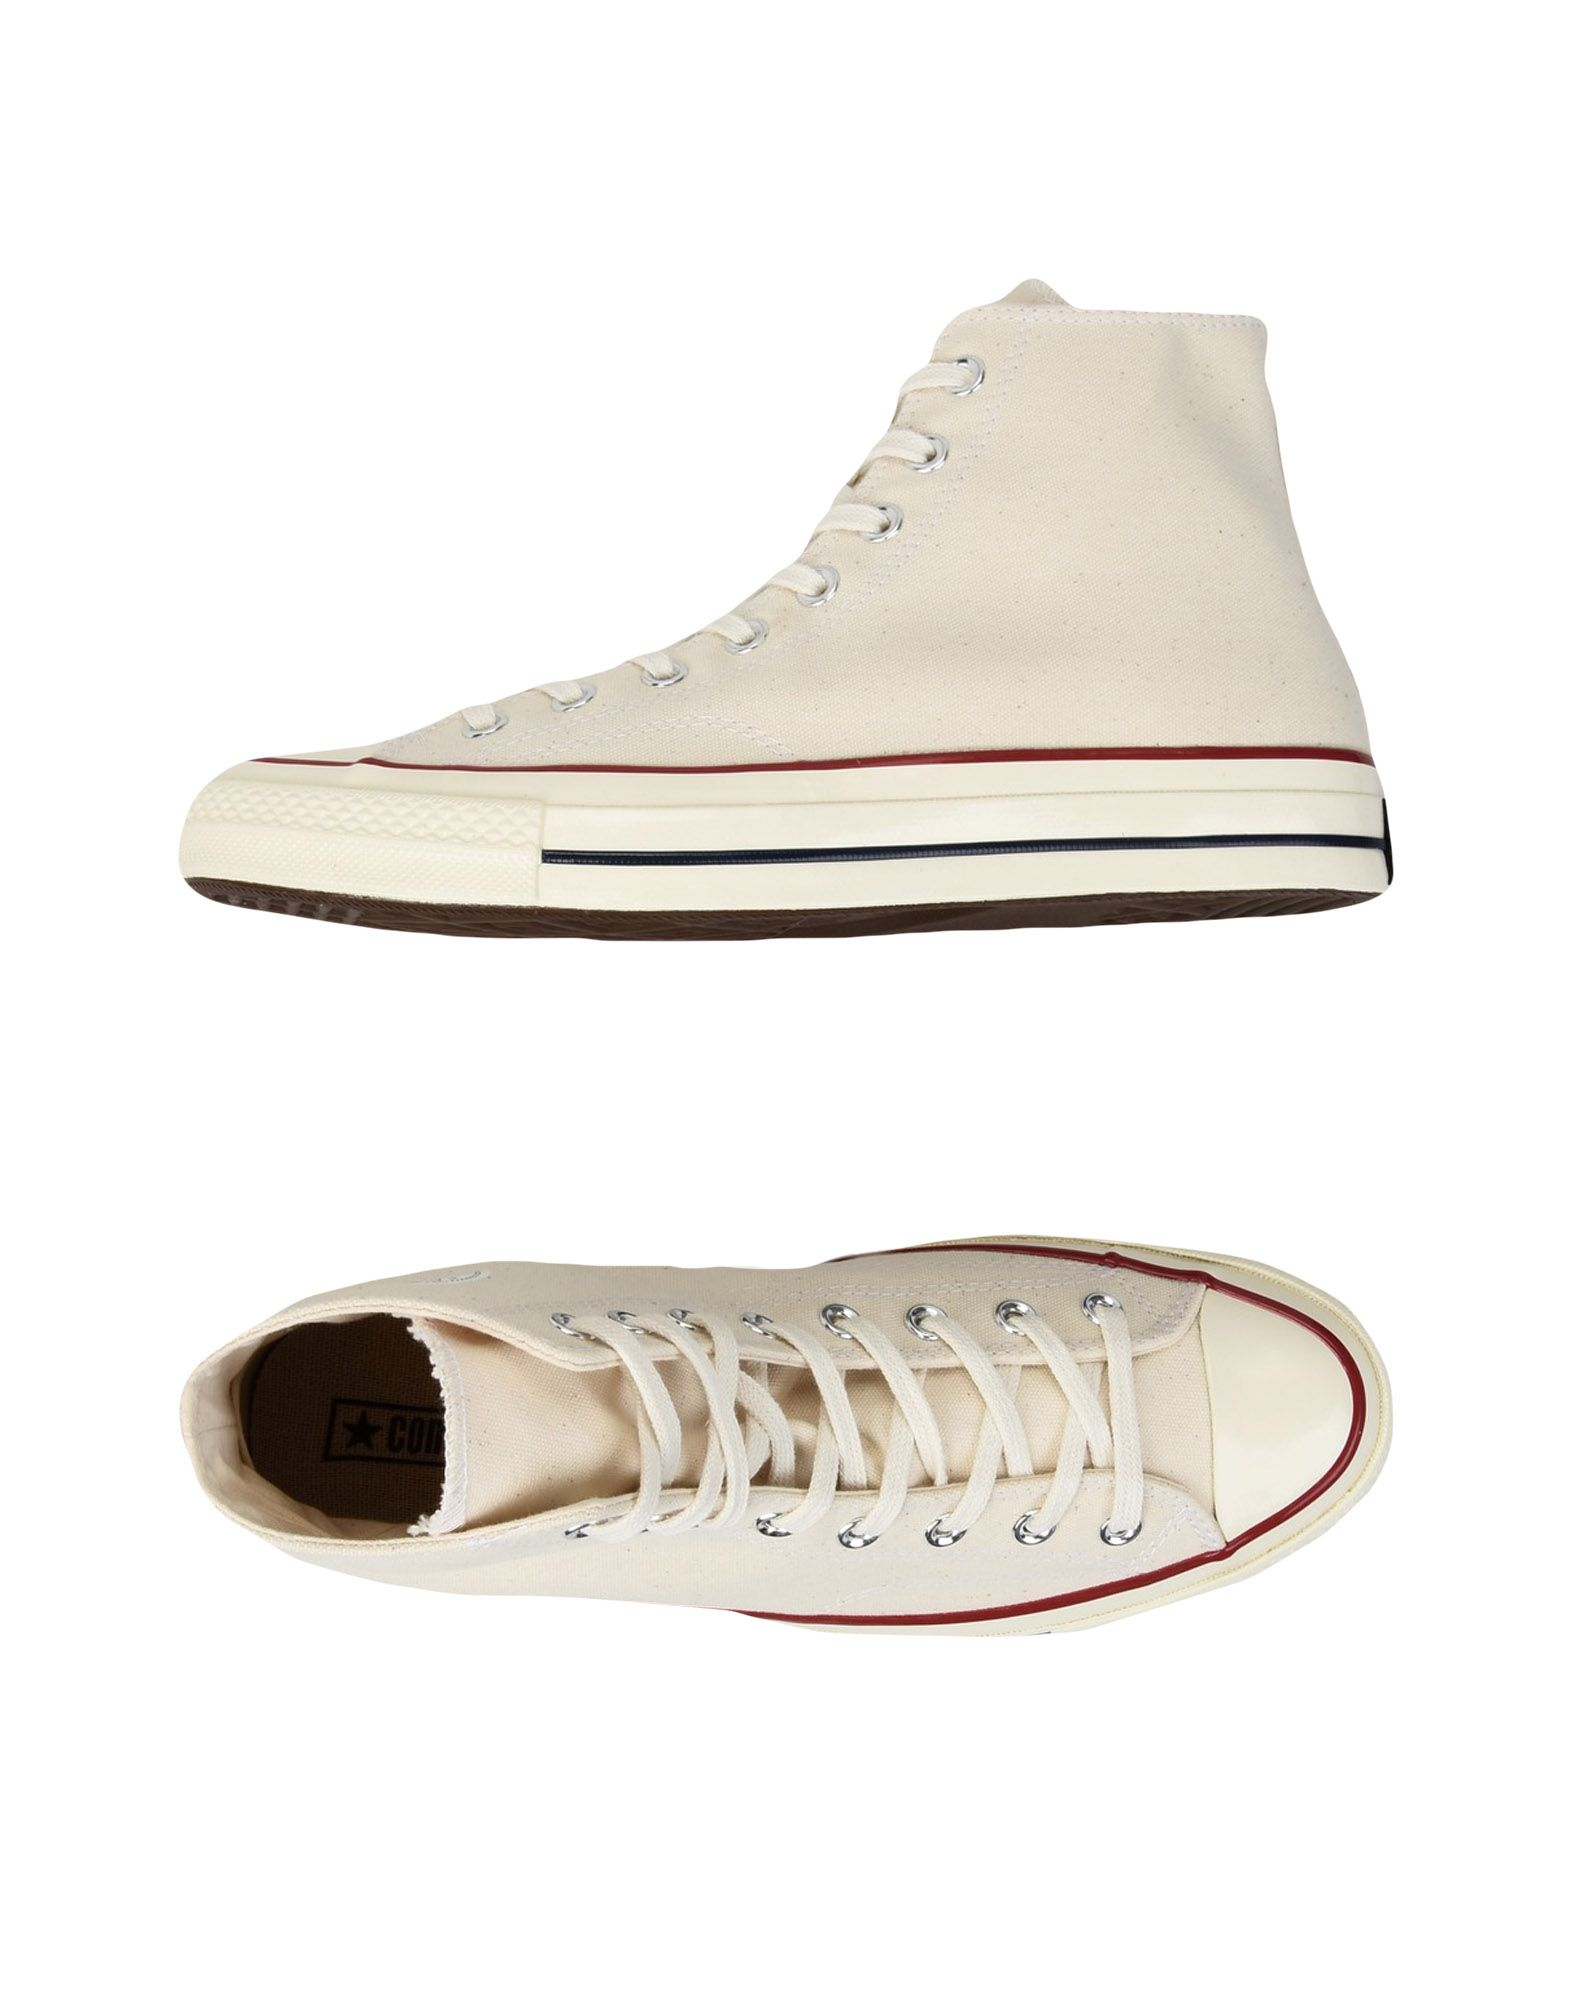 Sneakers Converse All Star Ct As Hi 70'S Canvas - Donna - 11216596SC